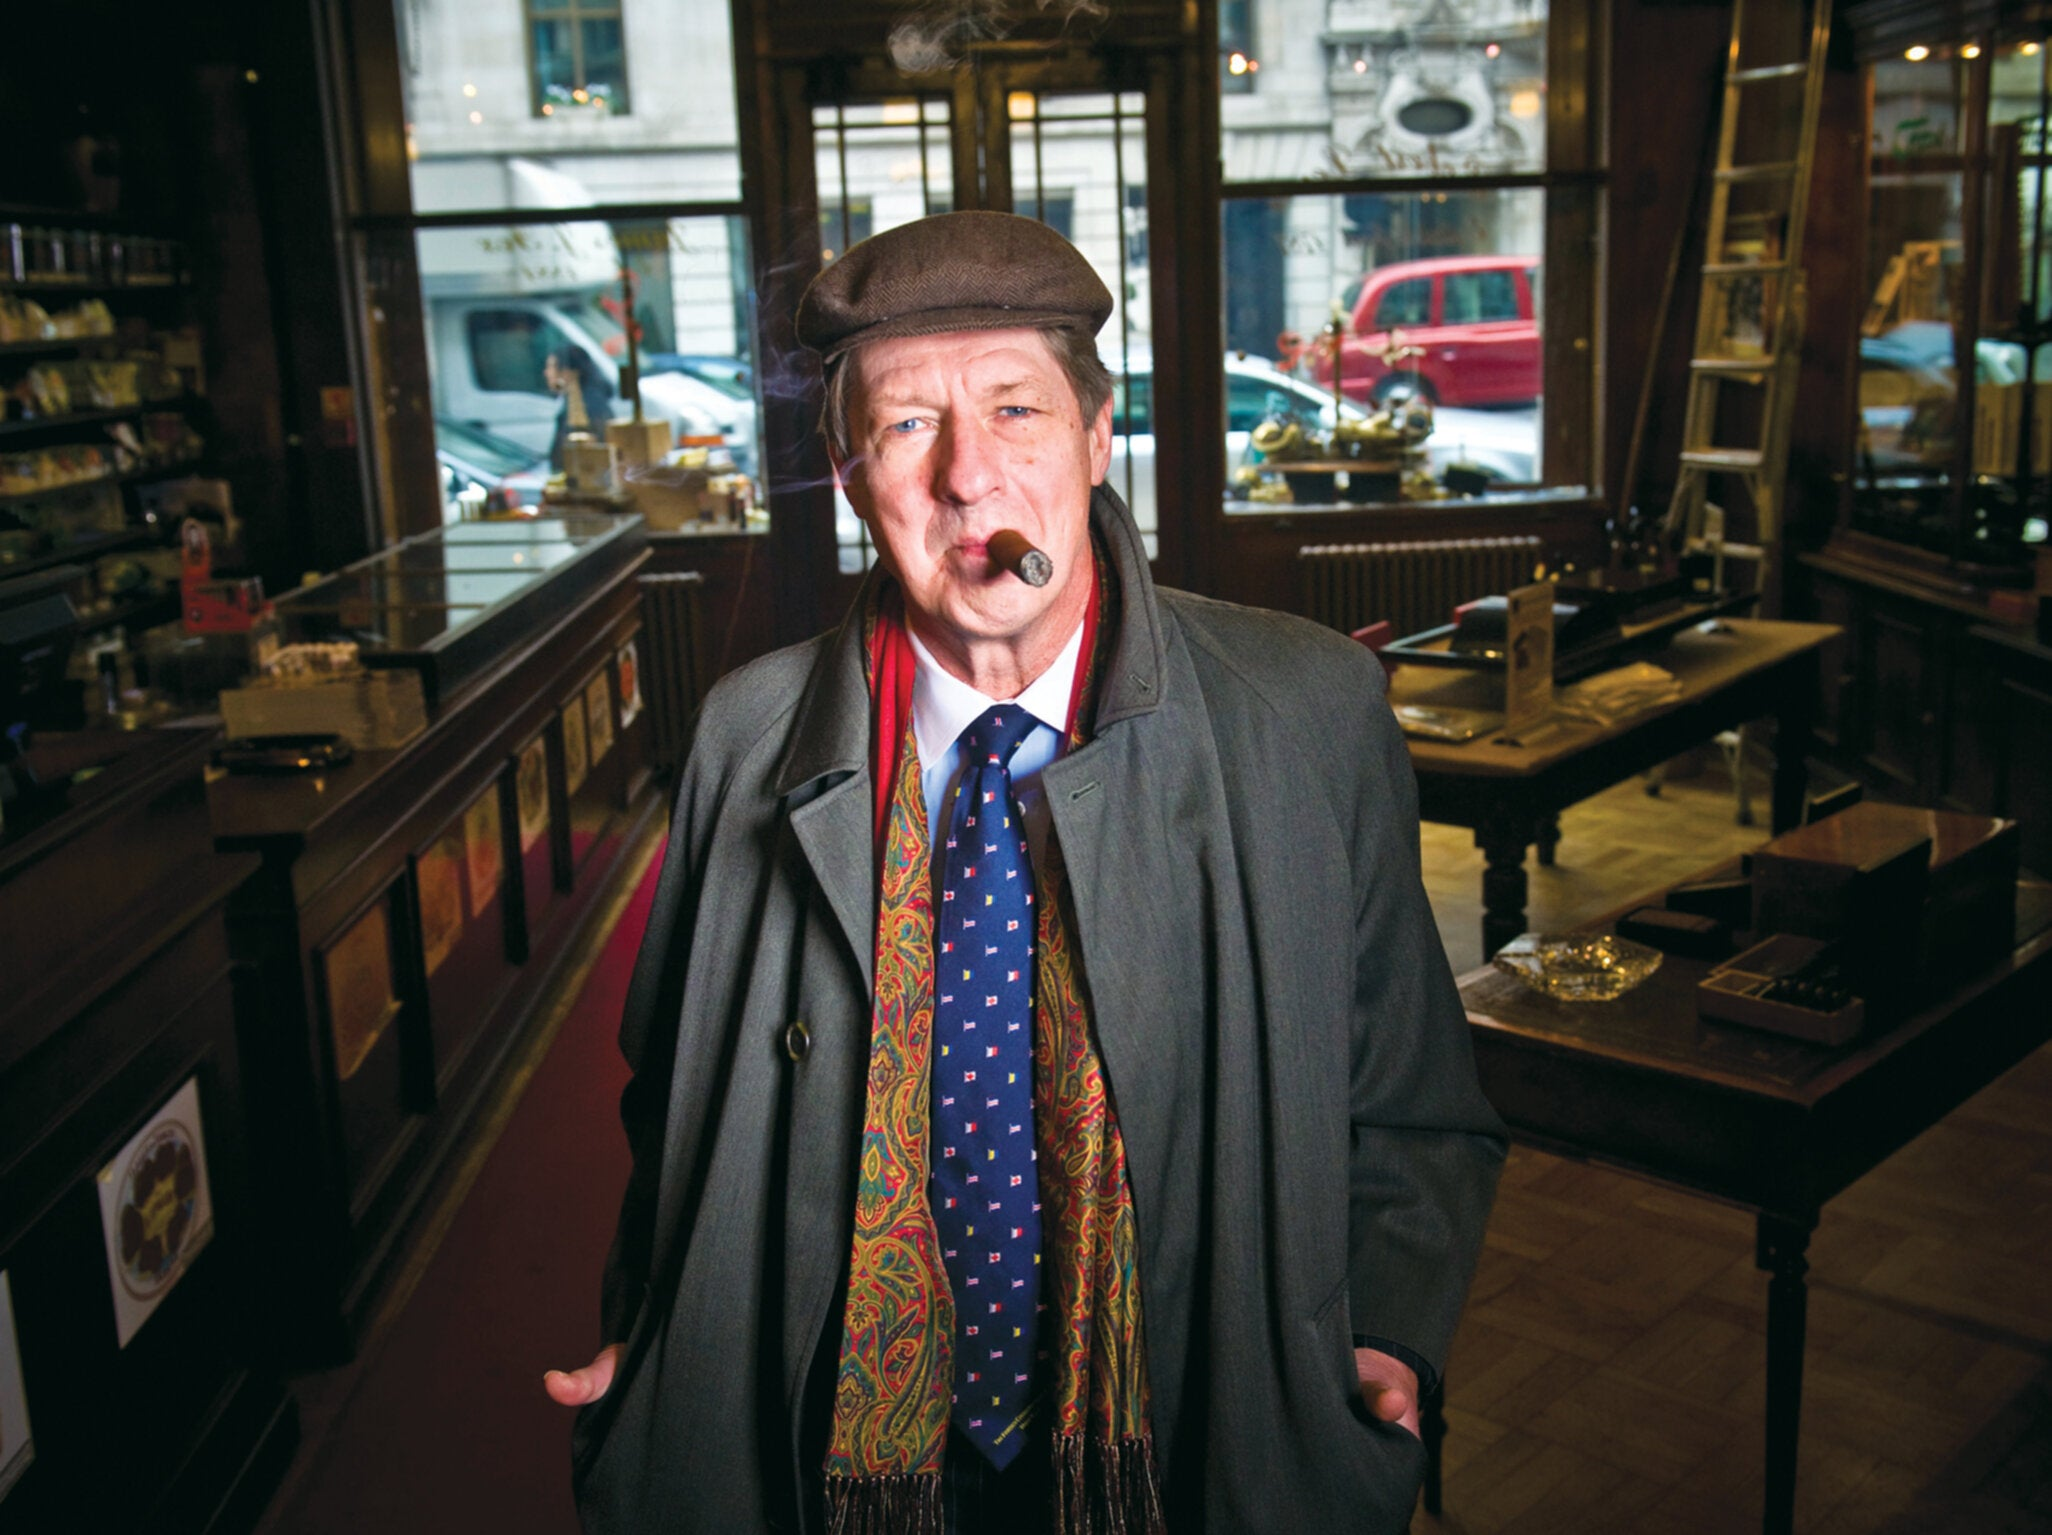 """PJ O'Rourke: """"I thought Trump was unstable, dangerous. I still do"""""""